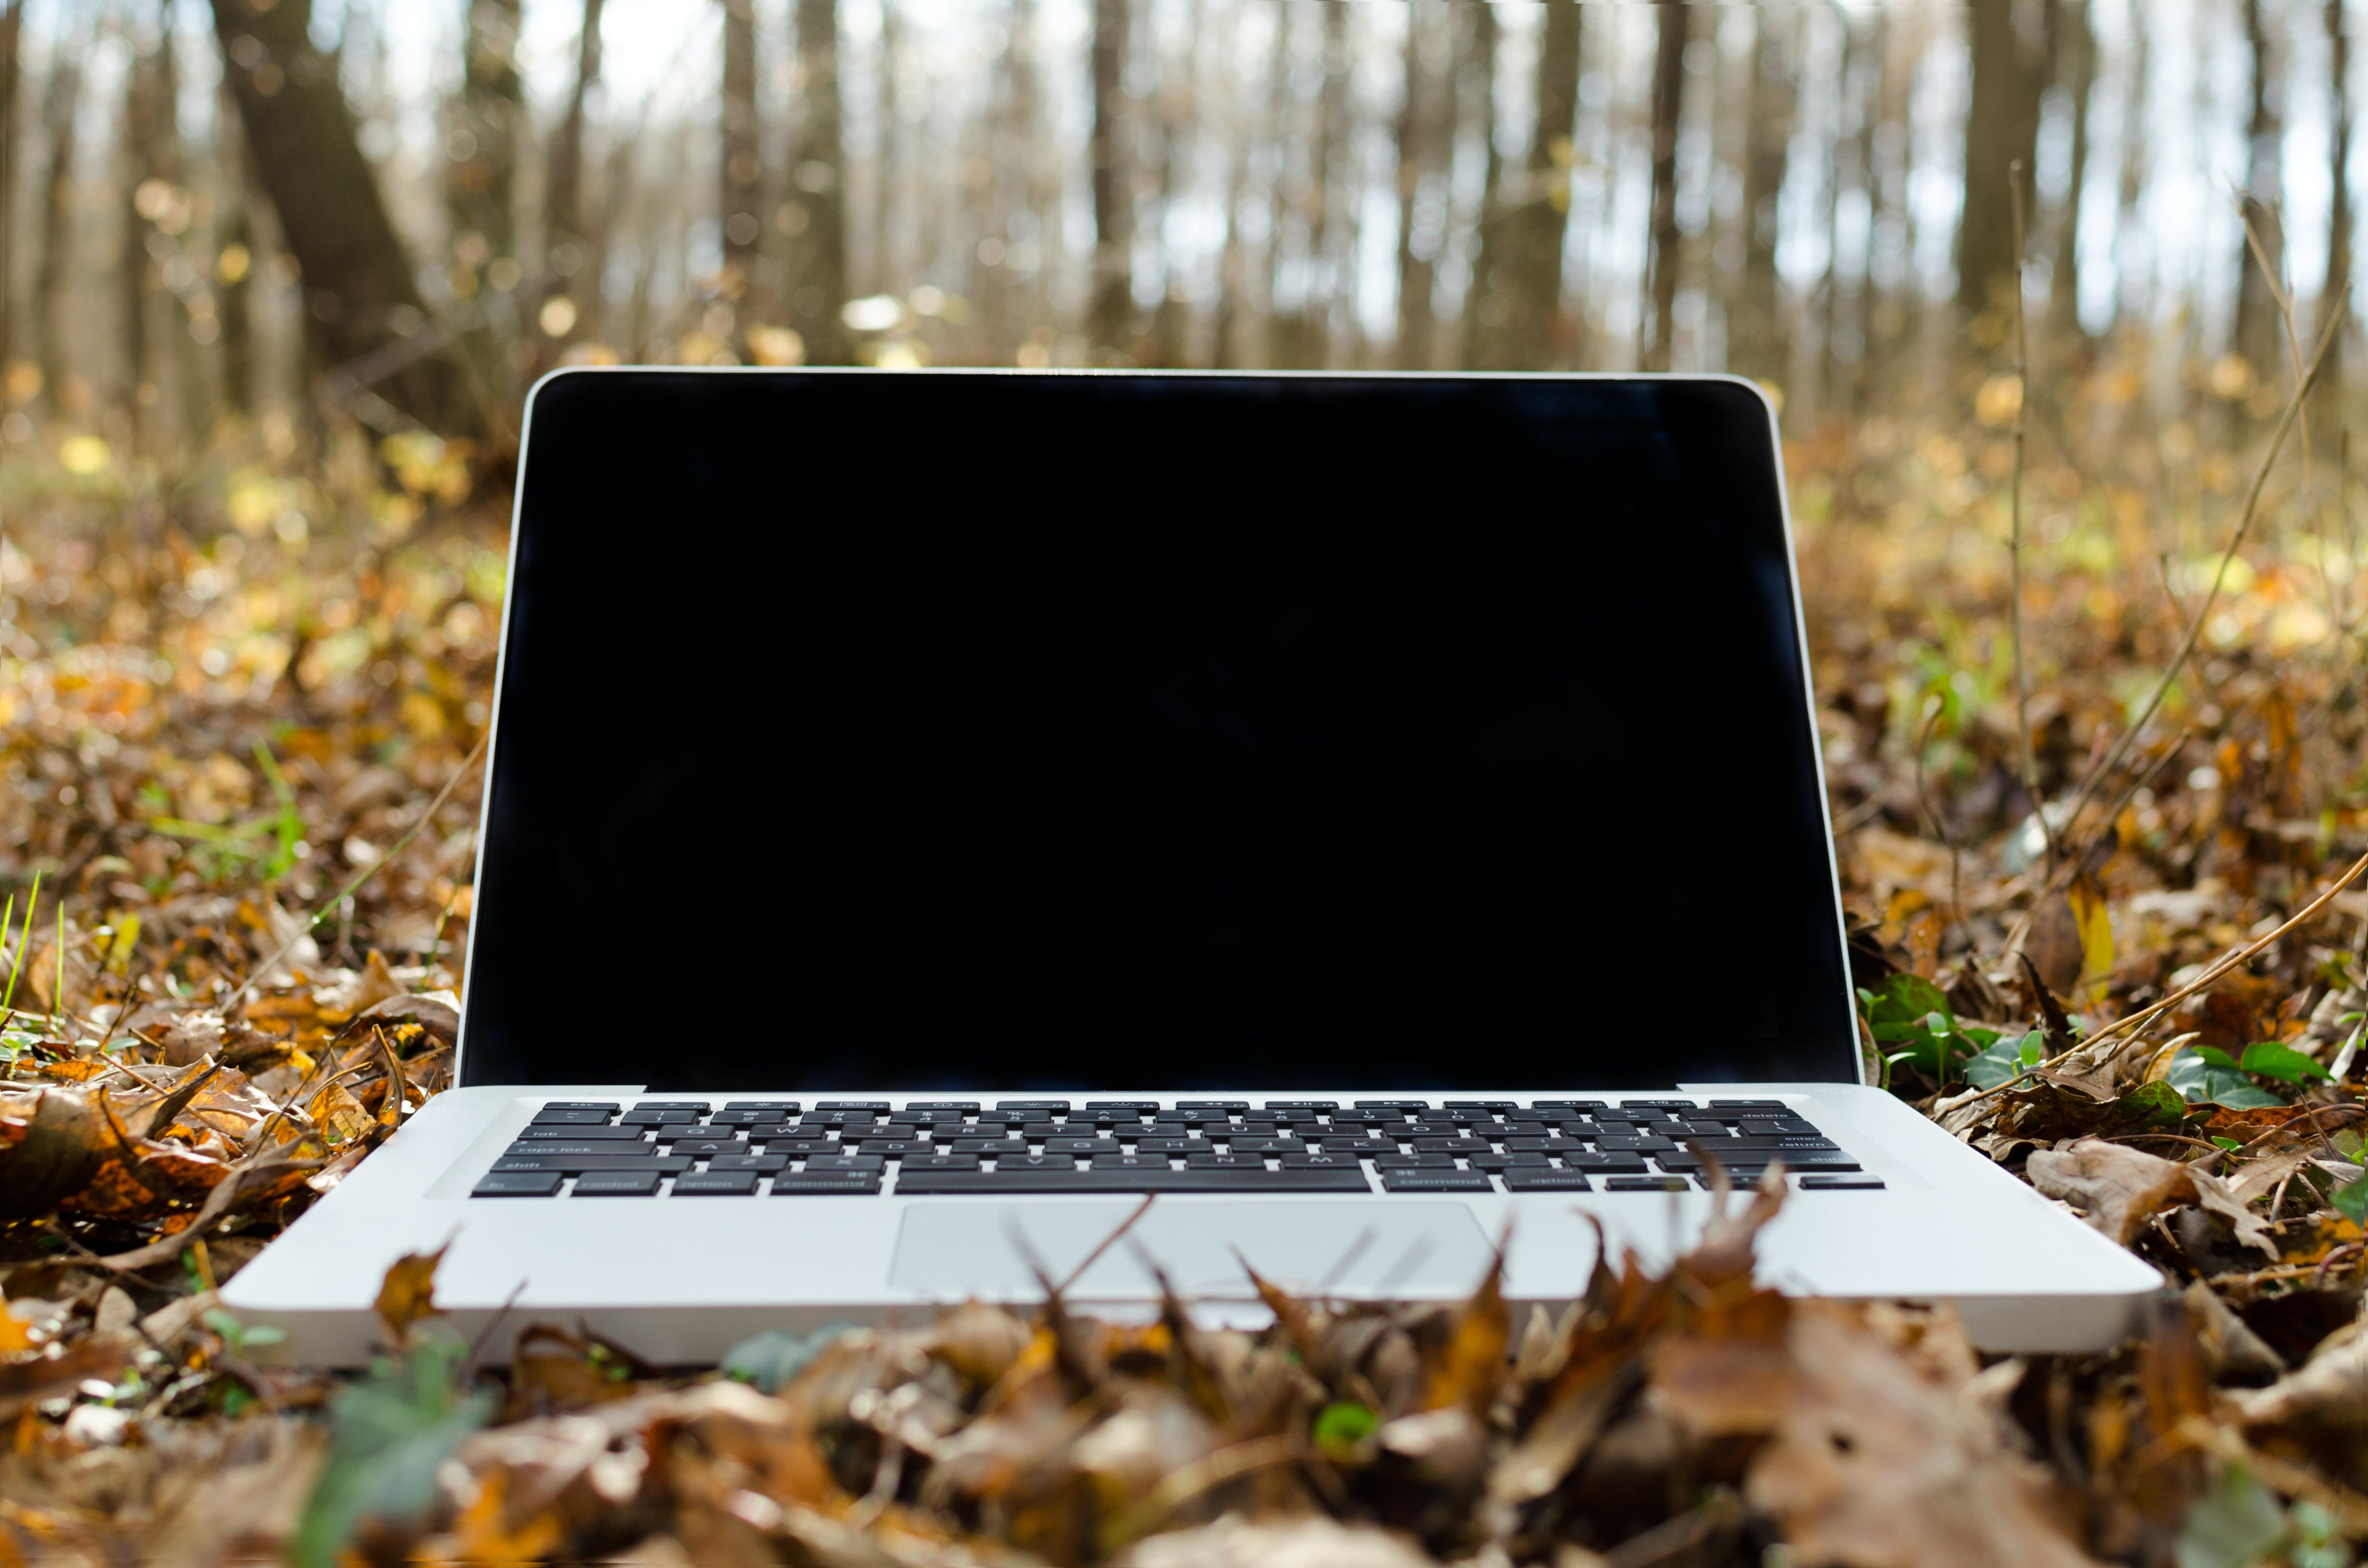 Silver Macbook Pro With Black Screen on Withered Leaves